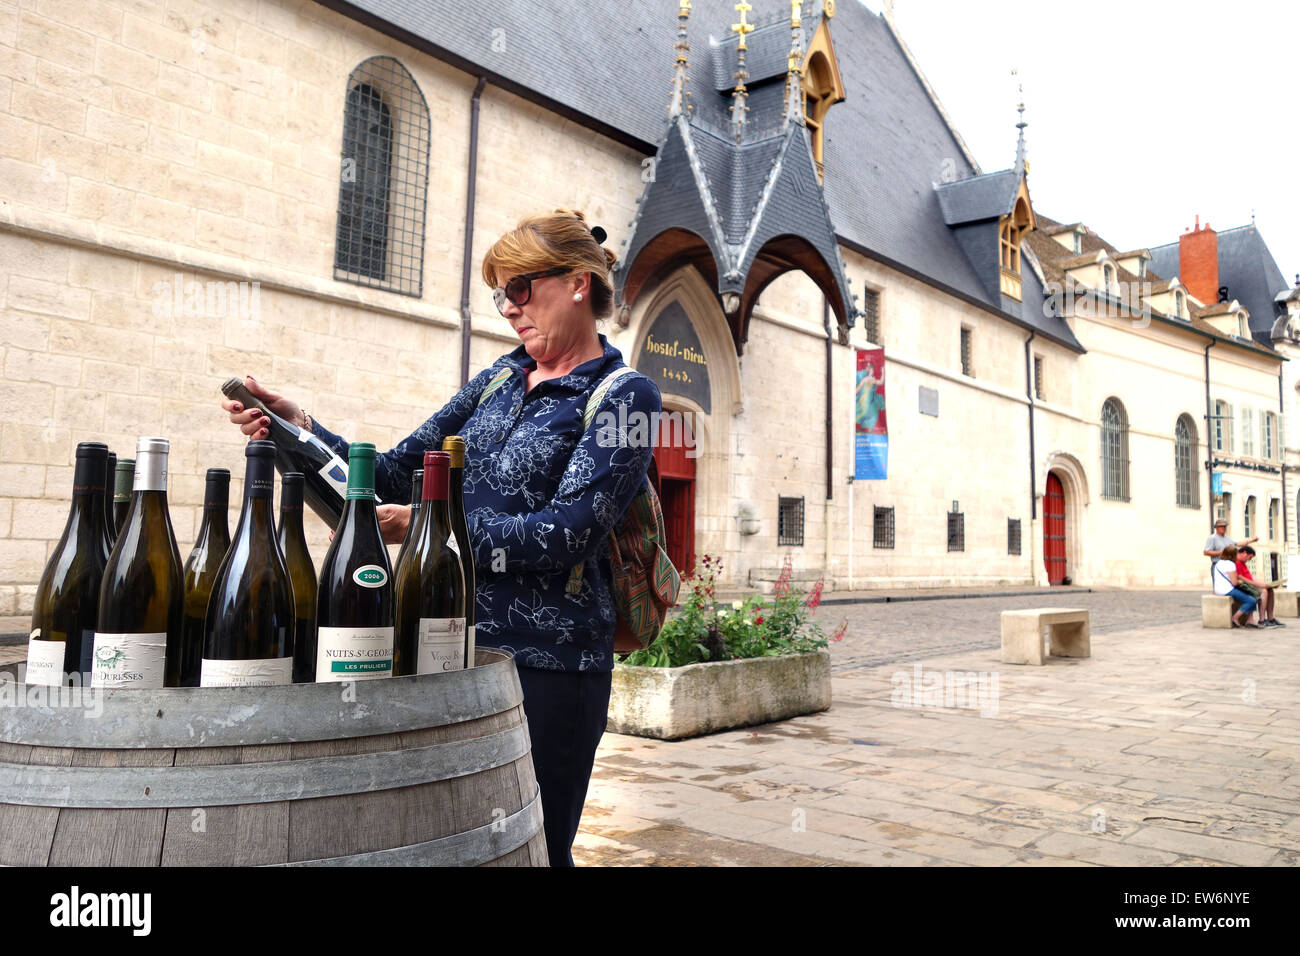 Beaune in France buying wine buyer woman - Stock Image